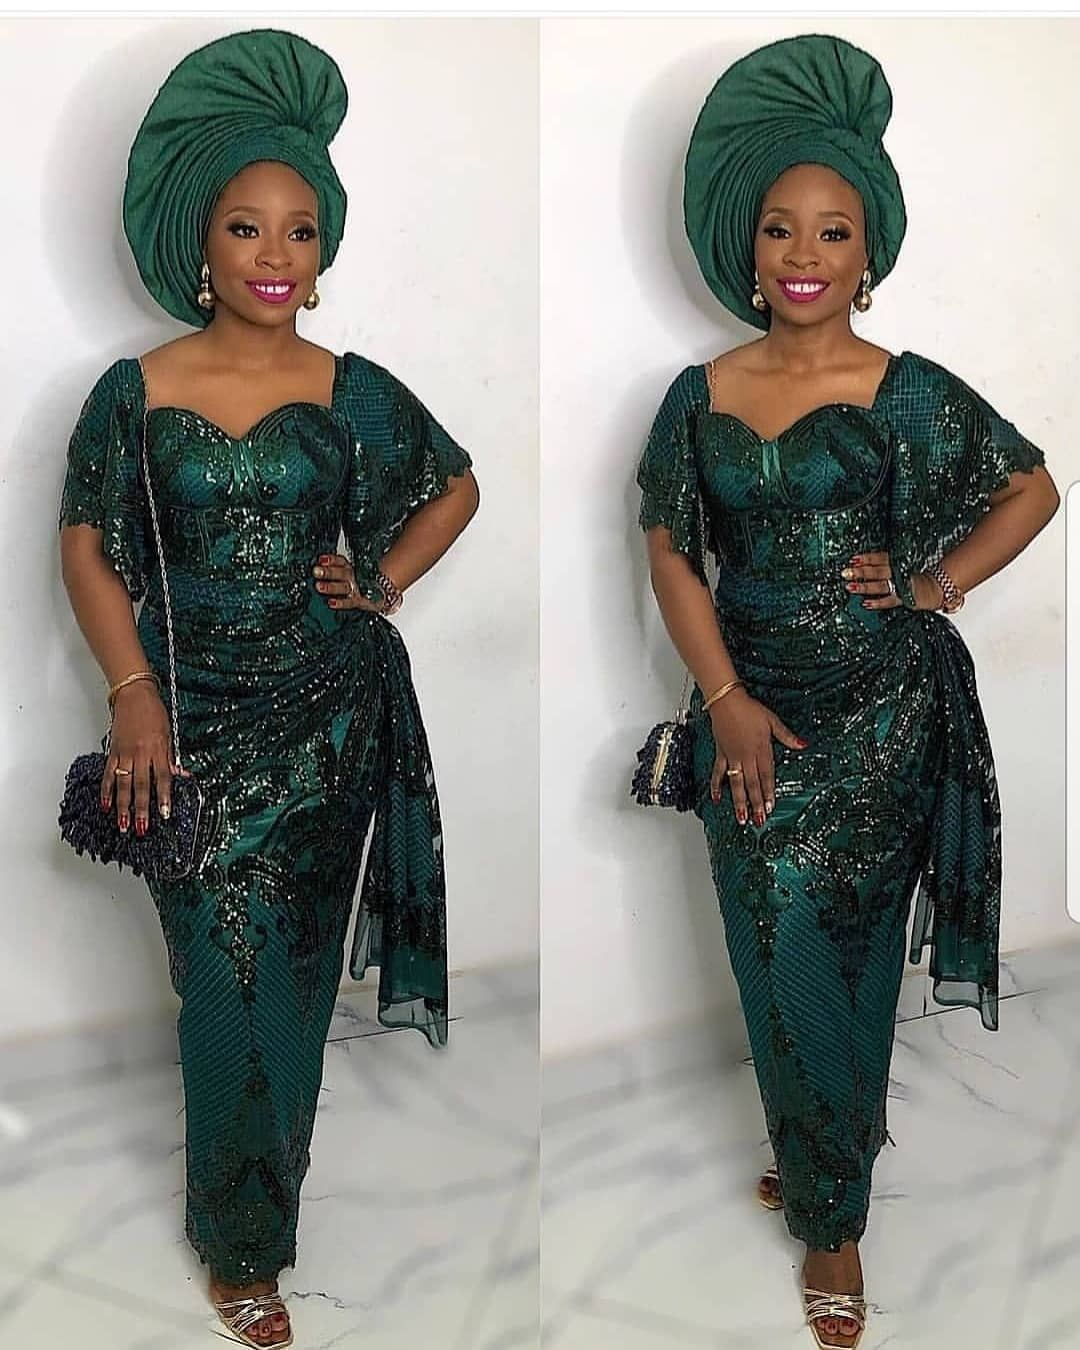 2019 Wedding Color Emerald Green In 2020 Nigerian Dress Styles African Print Dresses Nigerian Wedding Dress